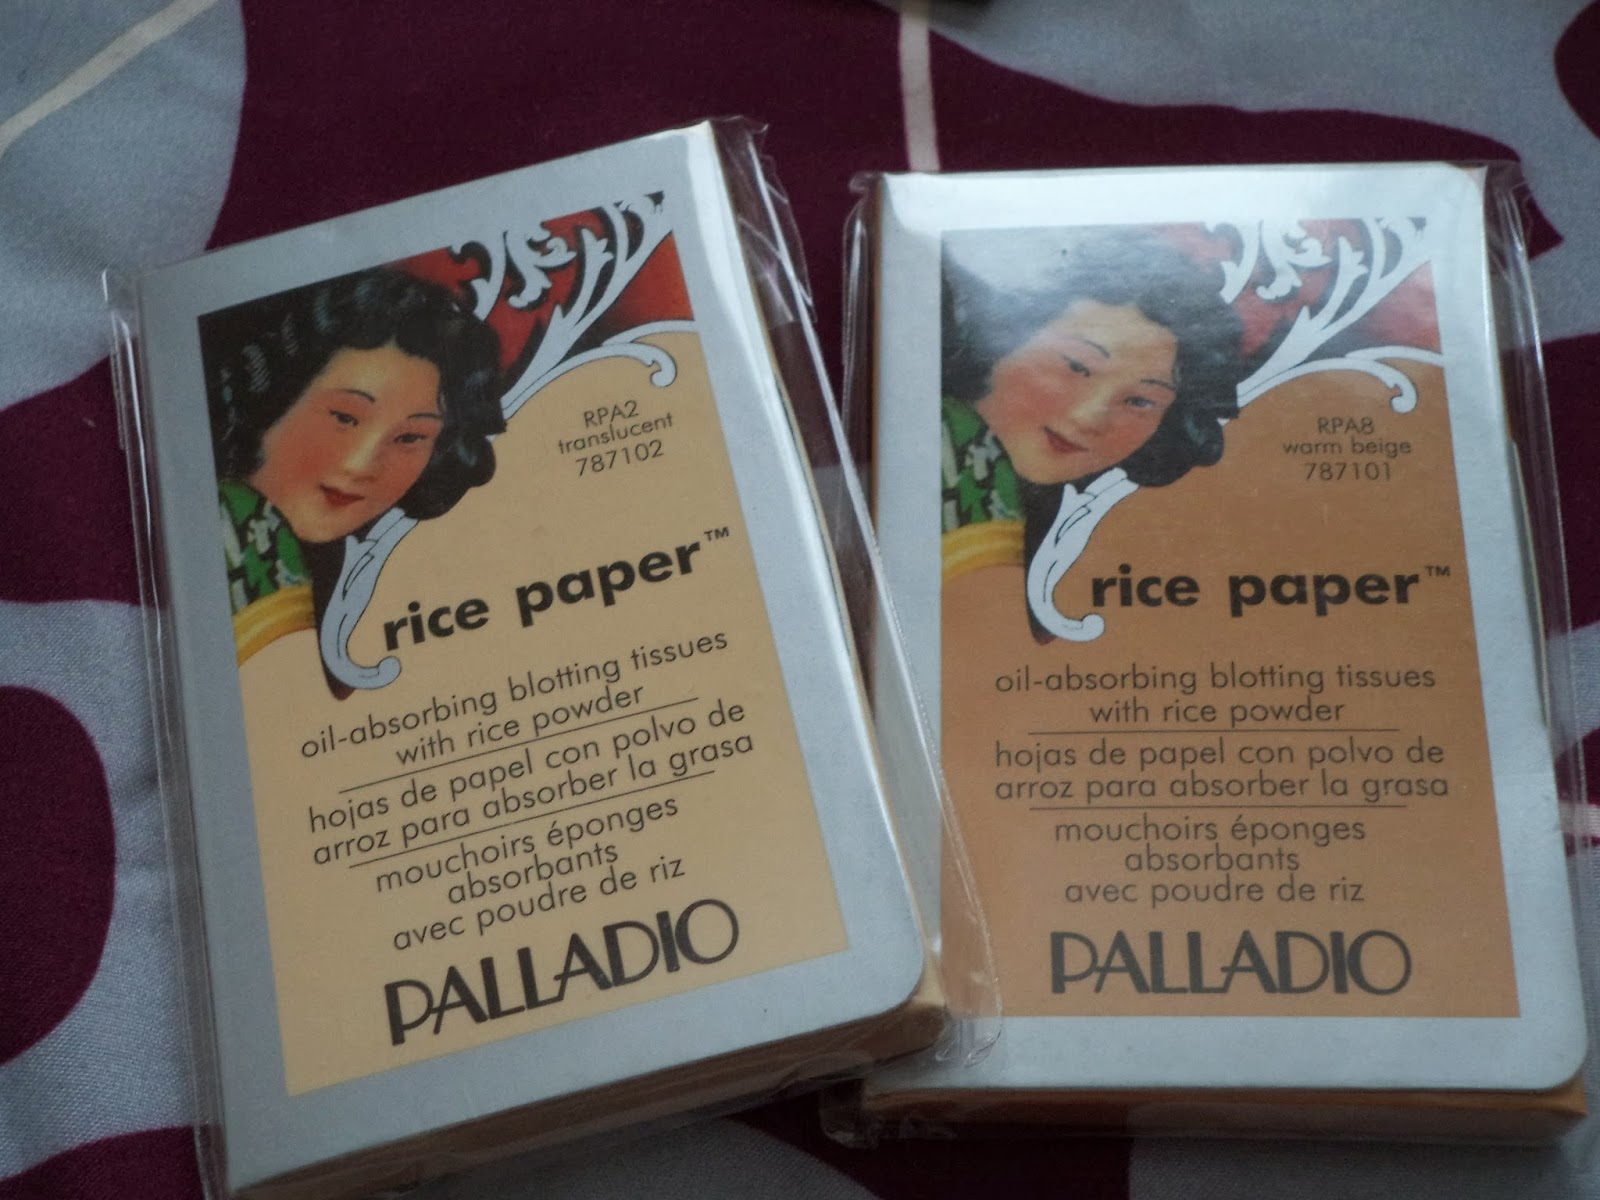 palladio oil absorbing rice powder review